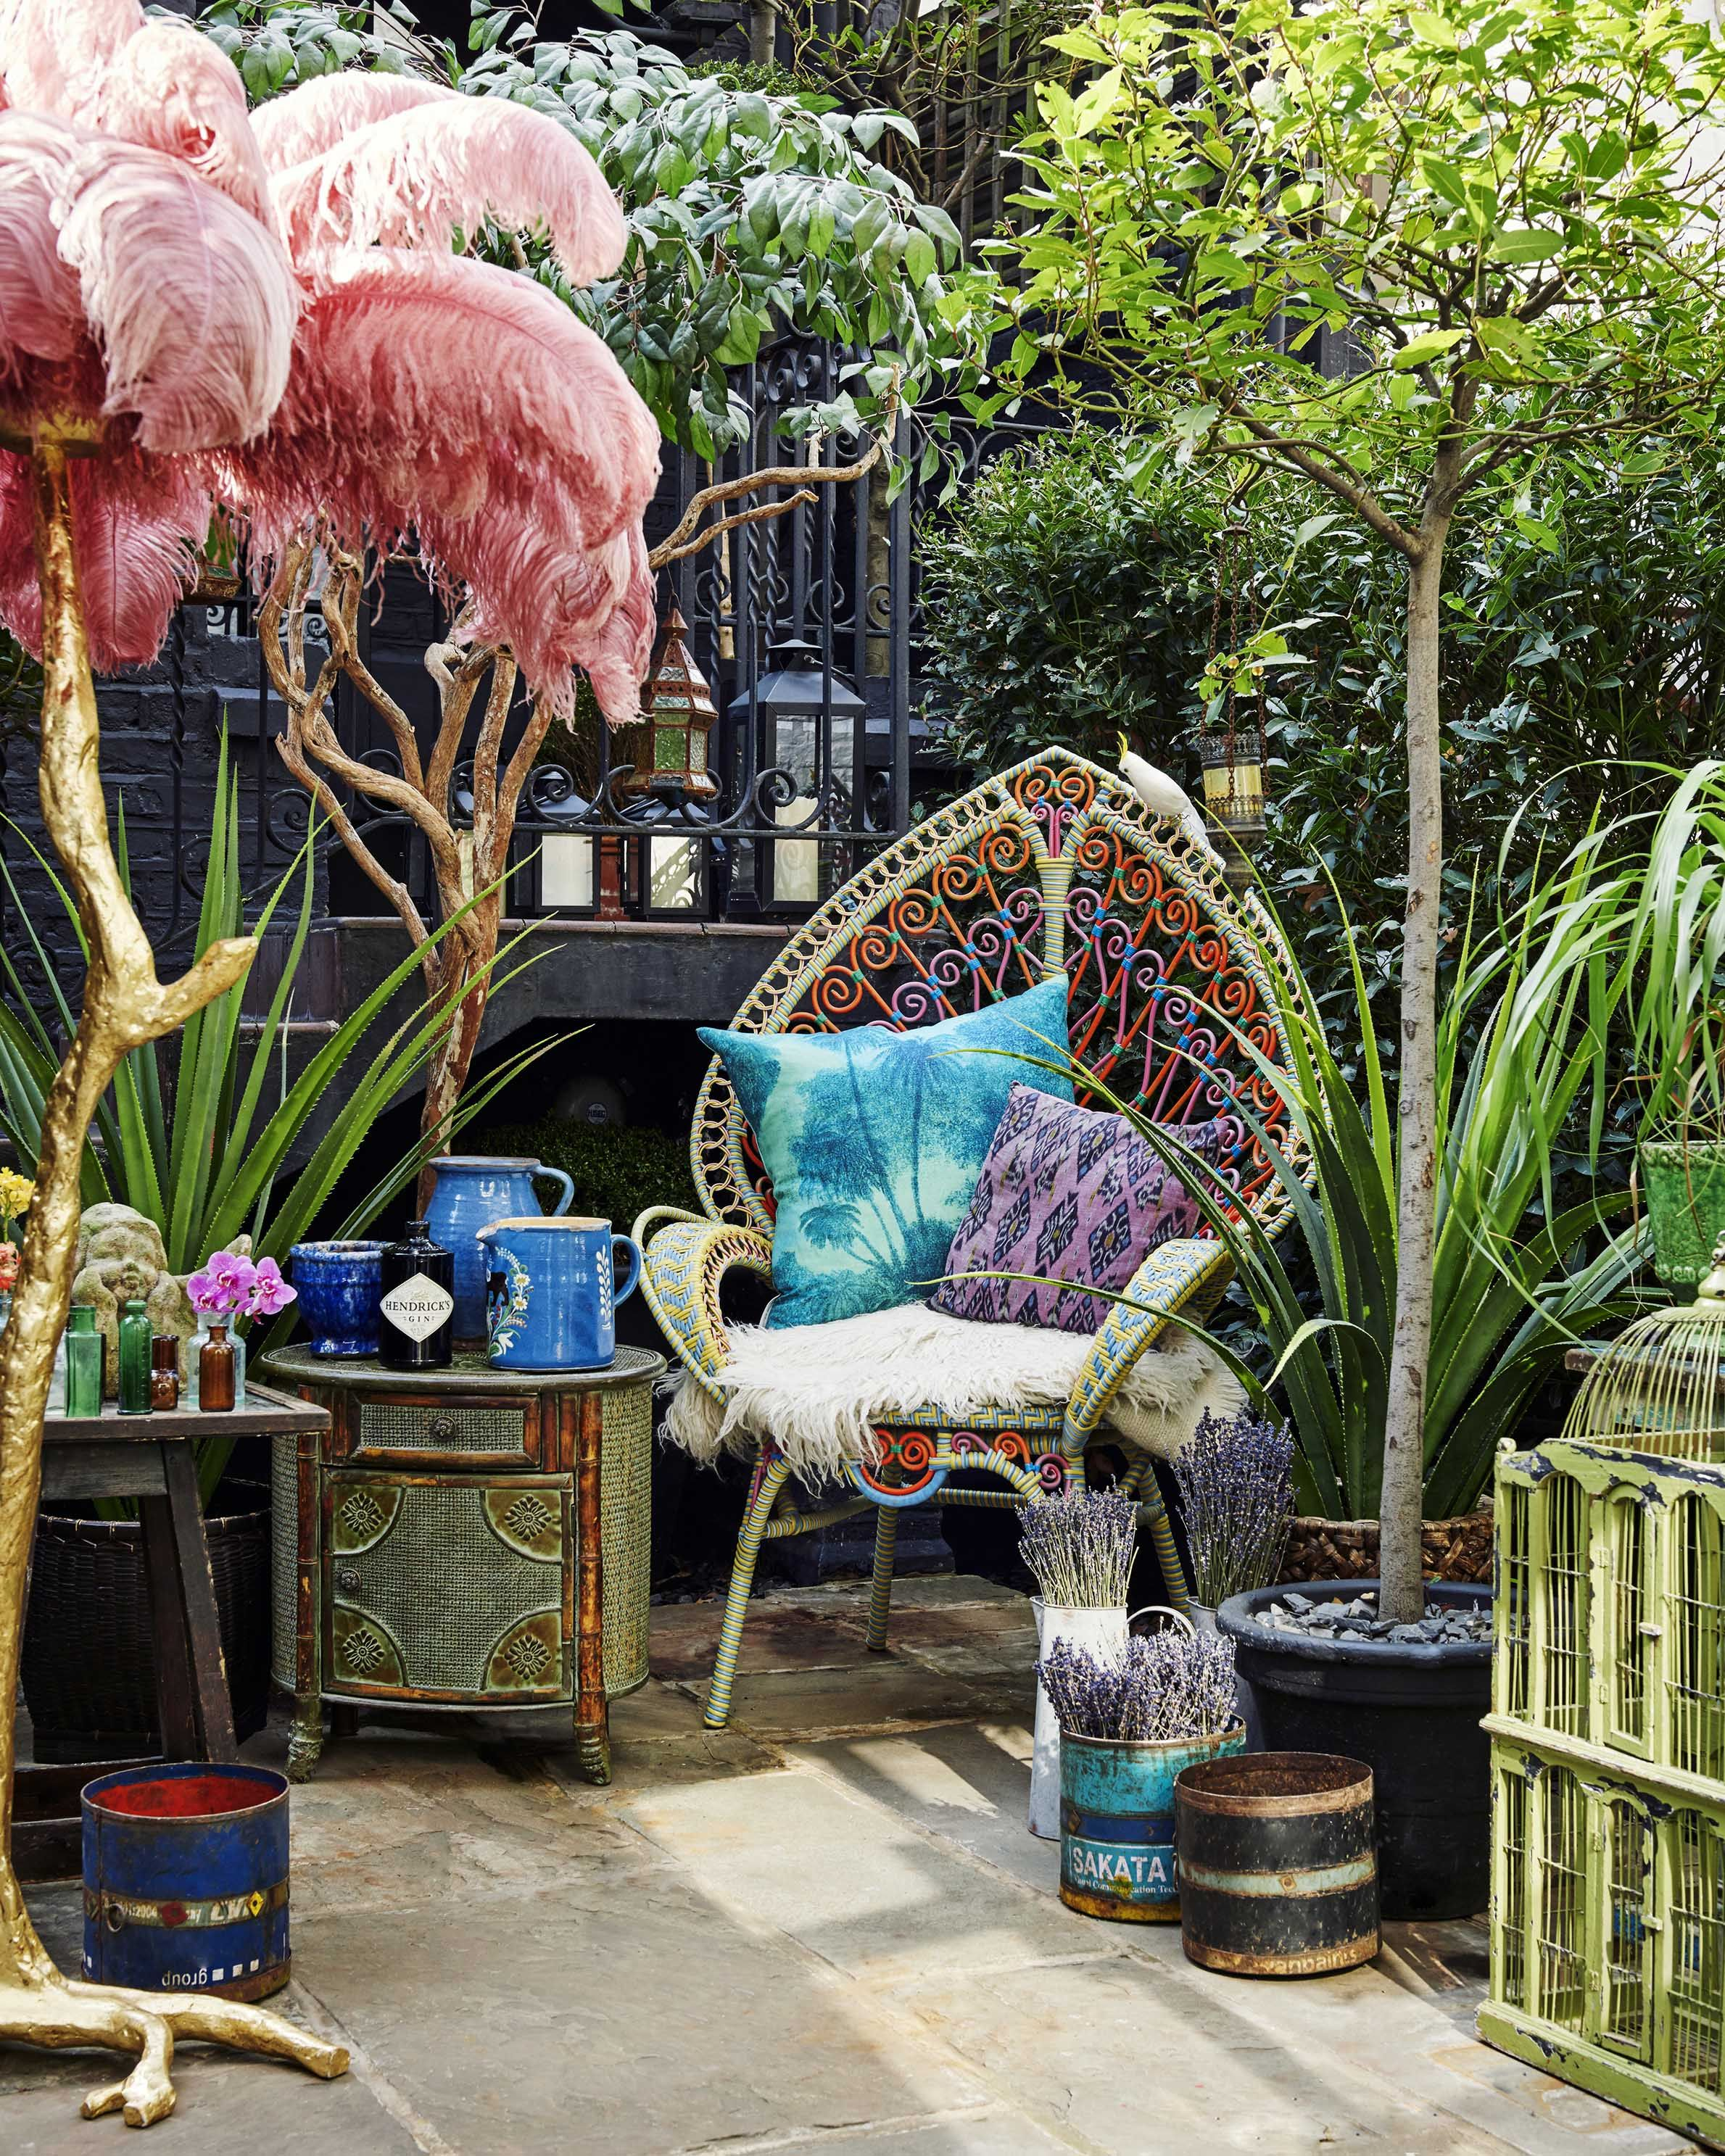 La Mia Casa Ideale matthew williamson has collaborated with installation artist